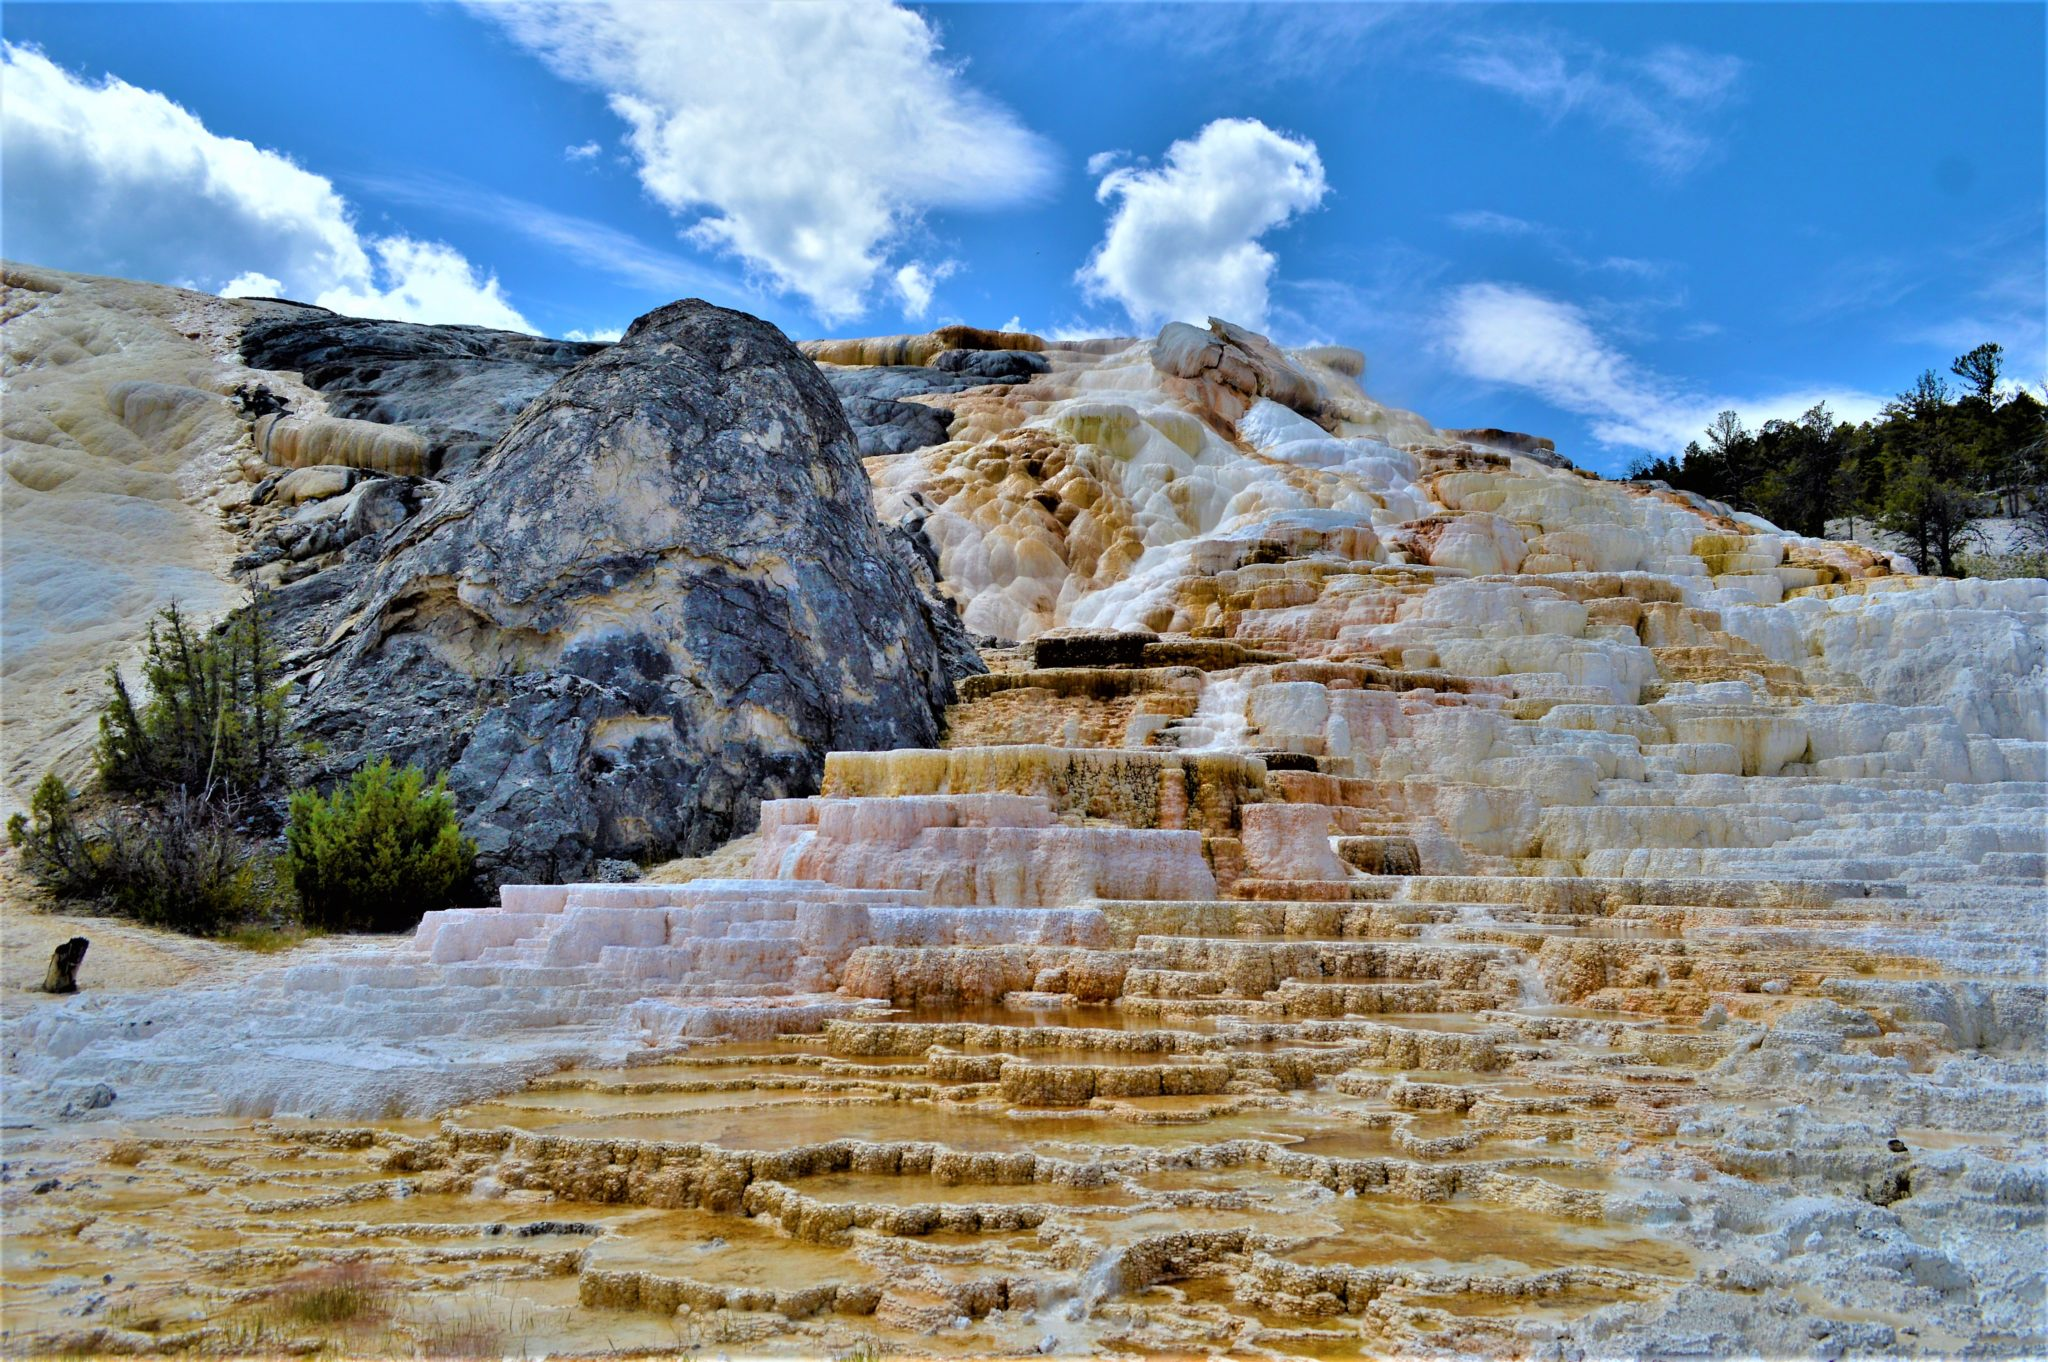 White rock, Mammoth Hot Springs, Yellowstone National Park, USA